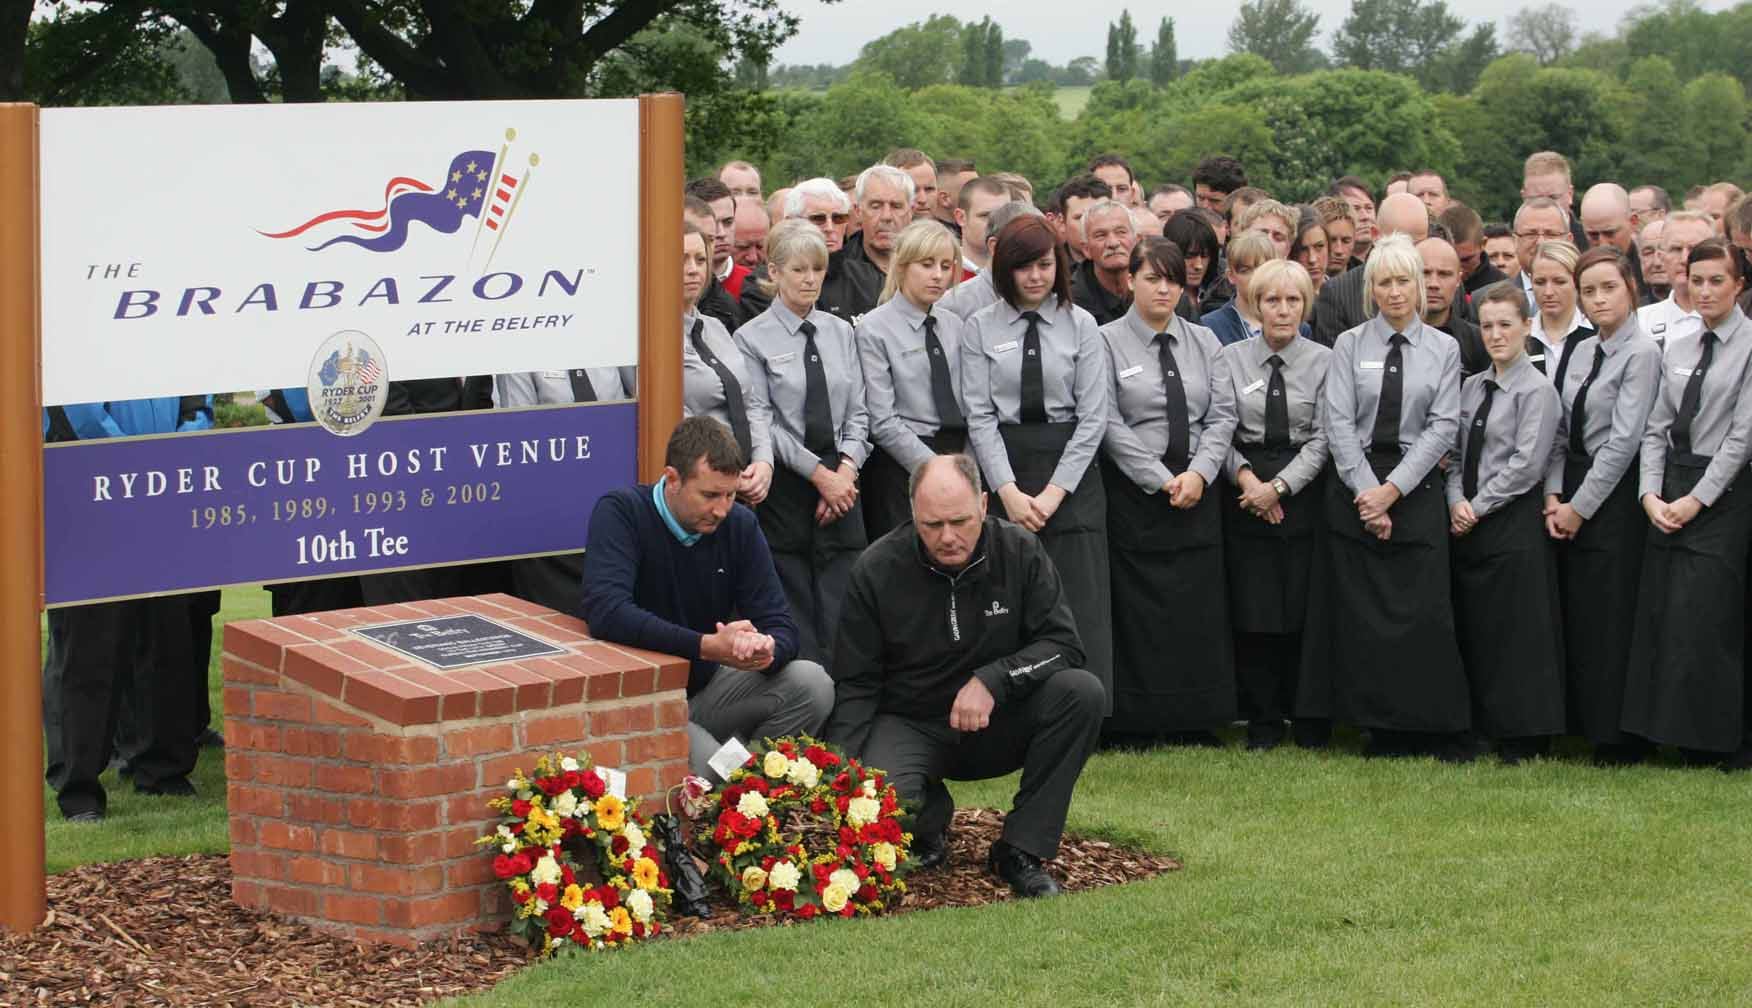 Minutes silence at the Belfry for Ballesteros